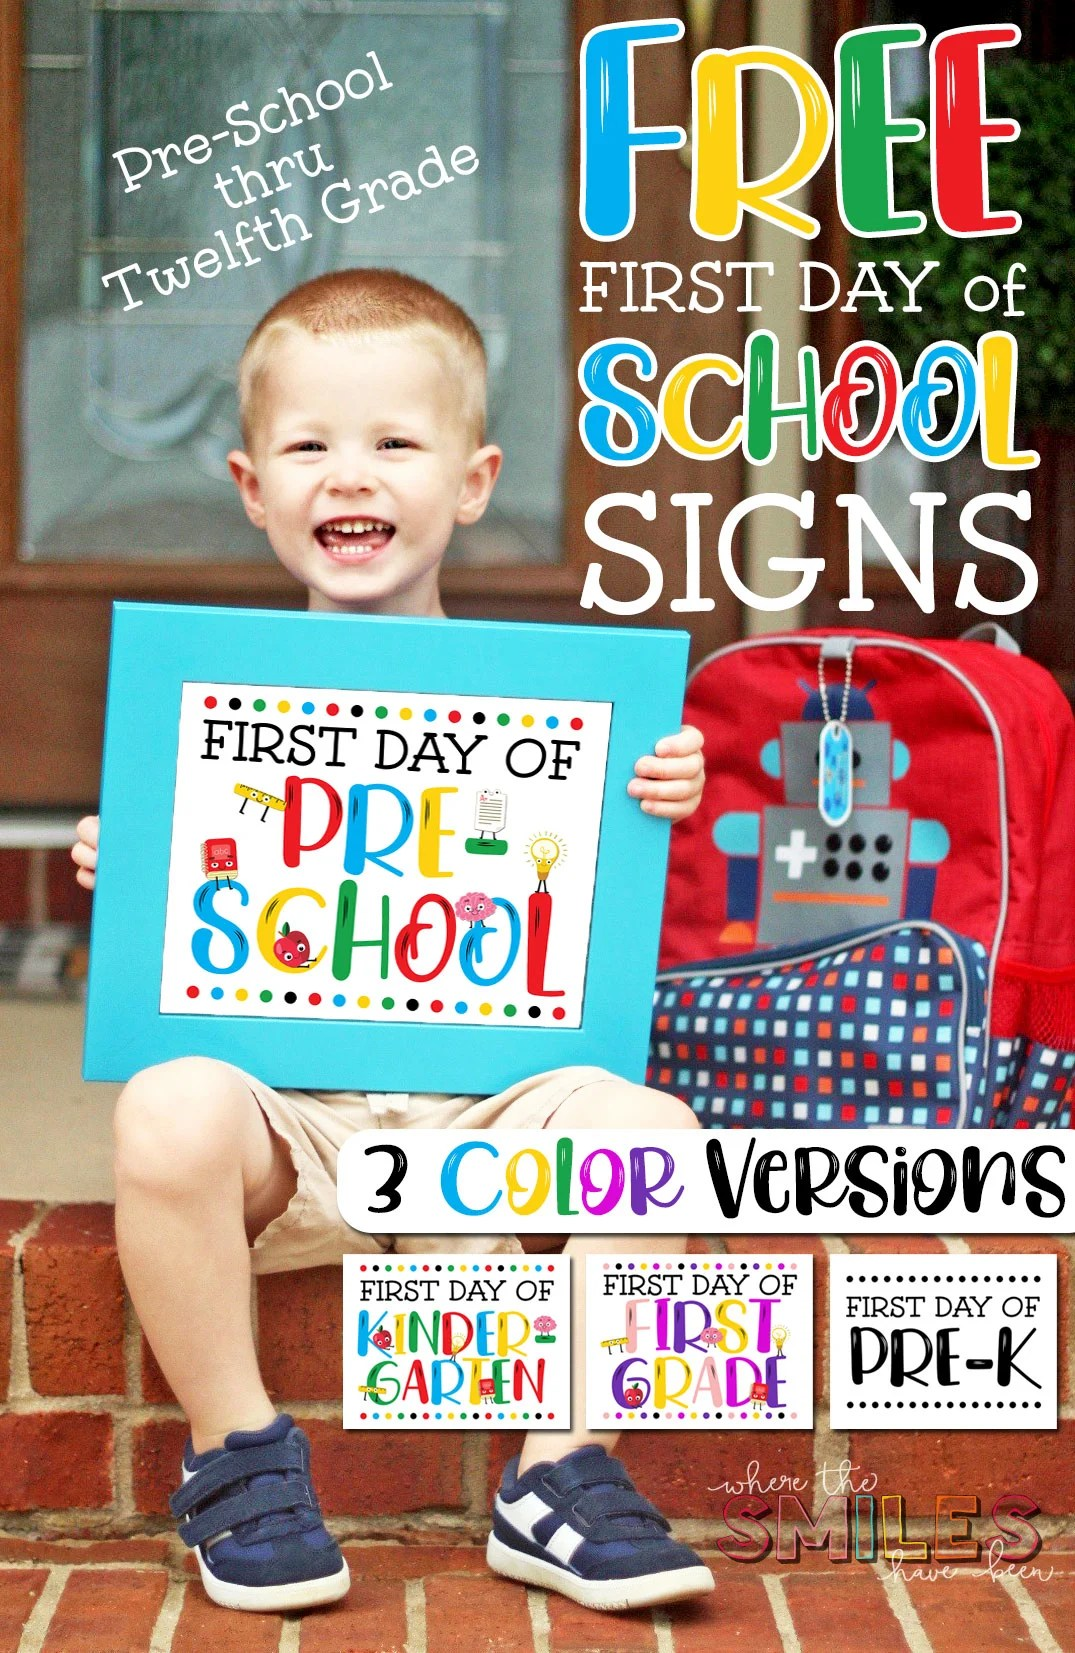 image regarding Printable First Day of Kindergarten Sign called Totally free Initially Working day of College Indication Printables - 3 Colour Styles!